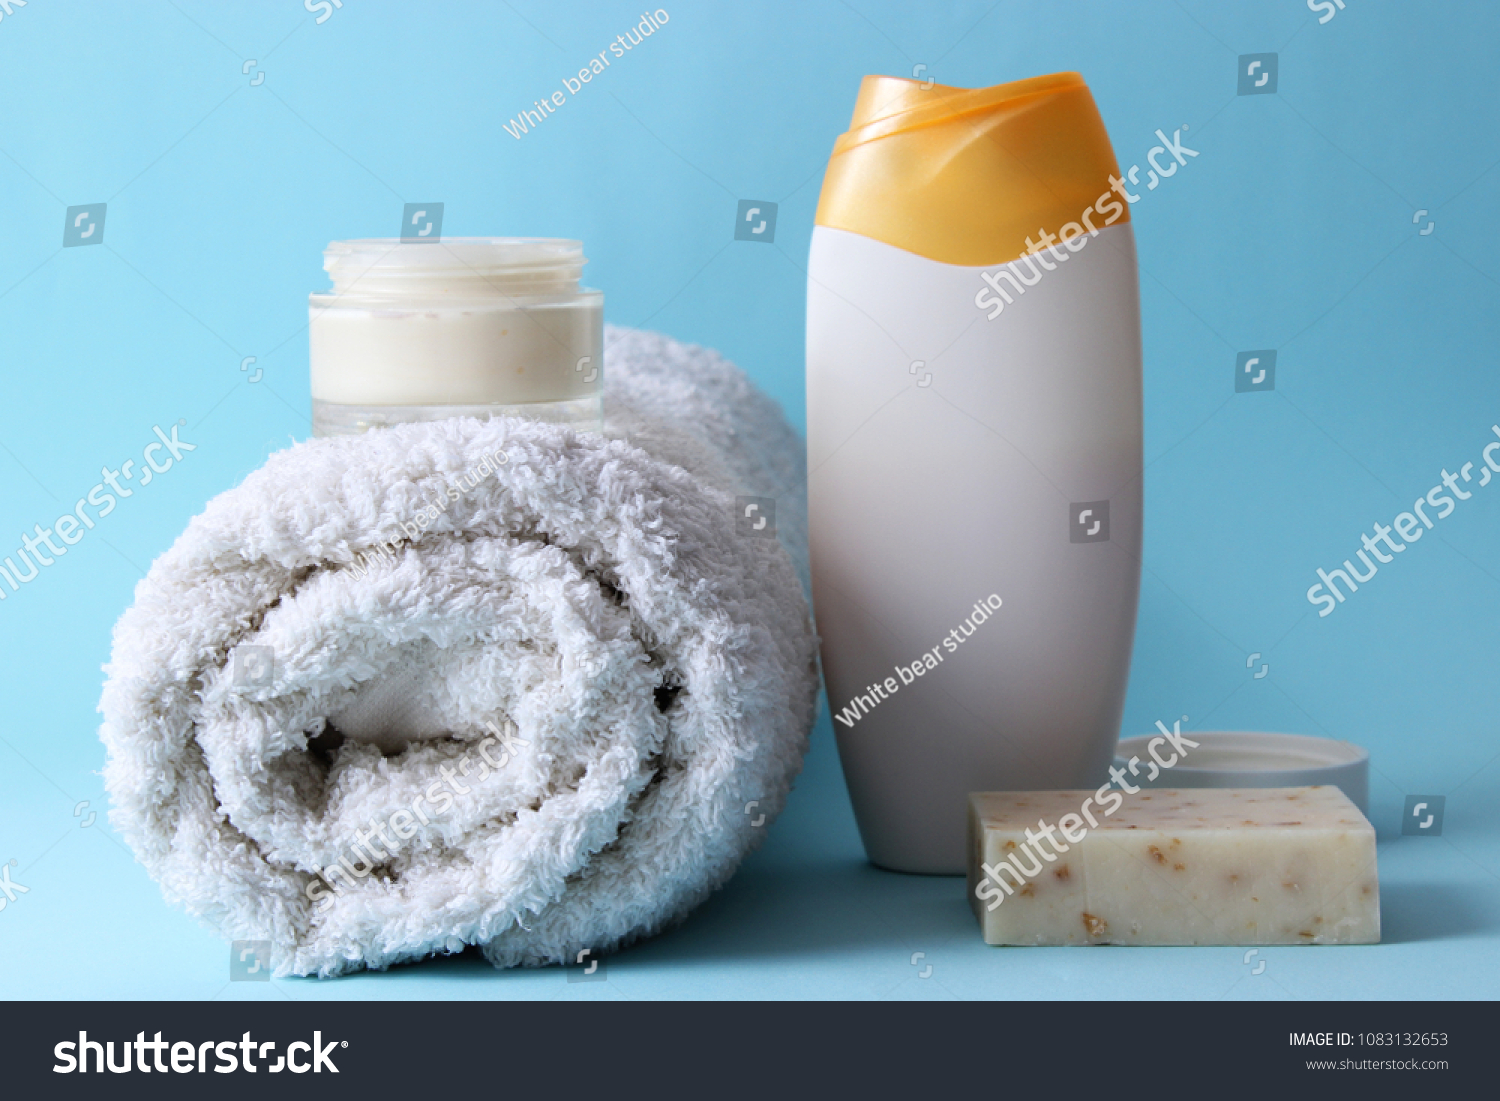 Shower Accessories On Colored Background Towel Stock Photo & Image ...